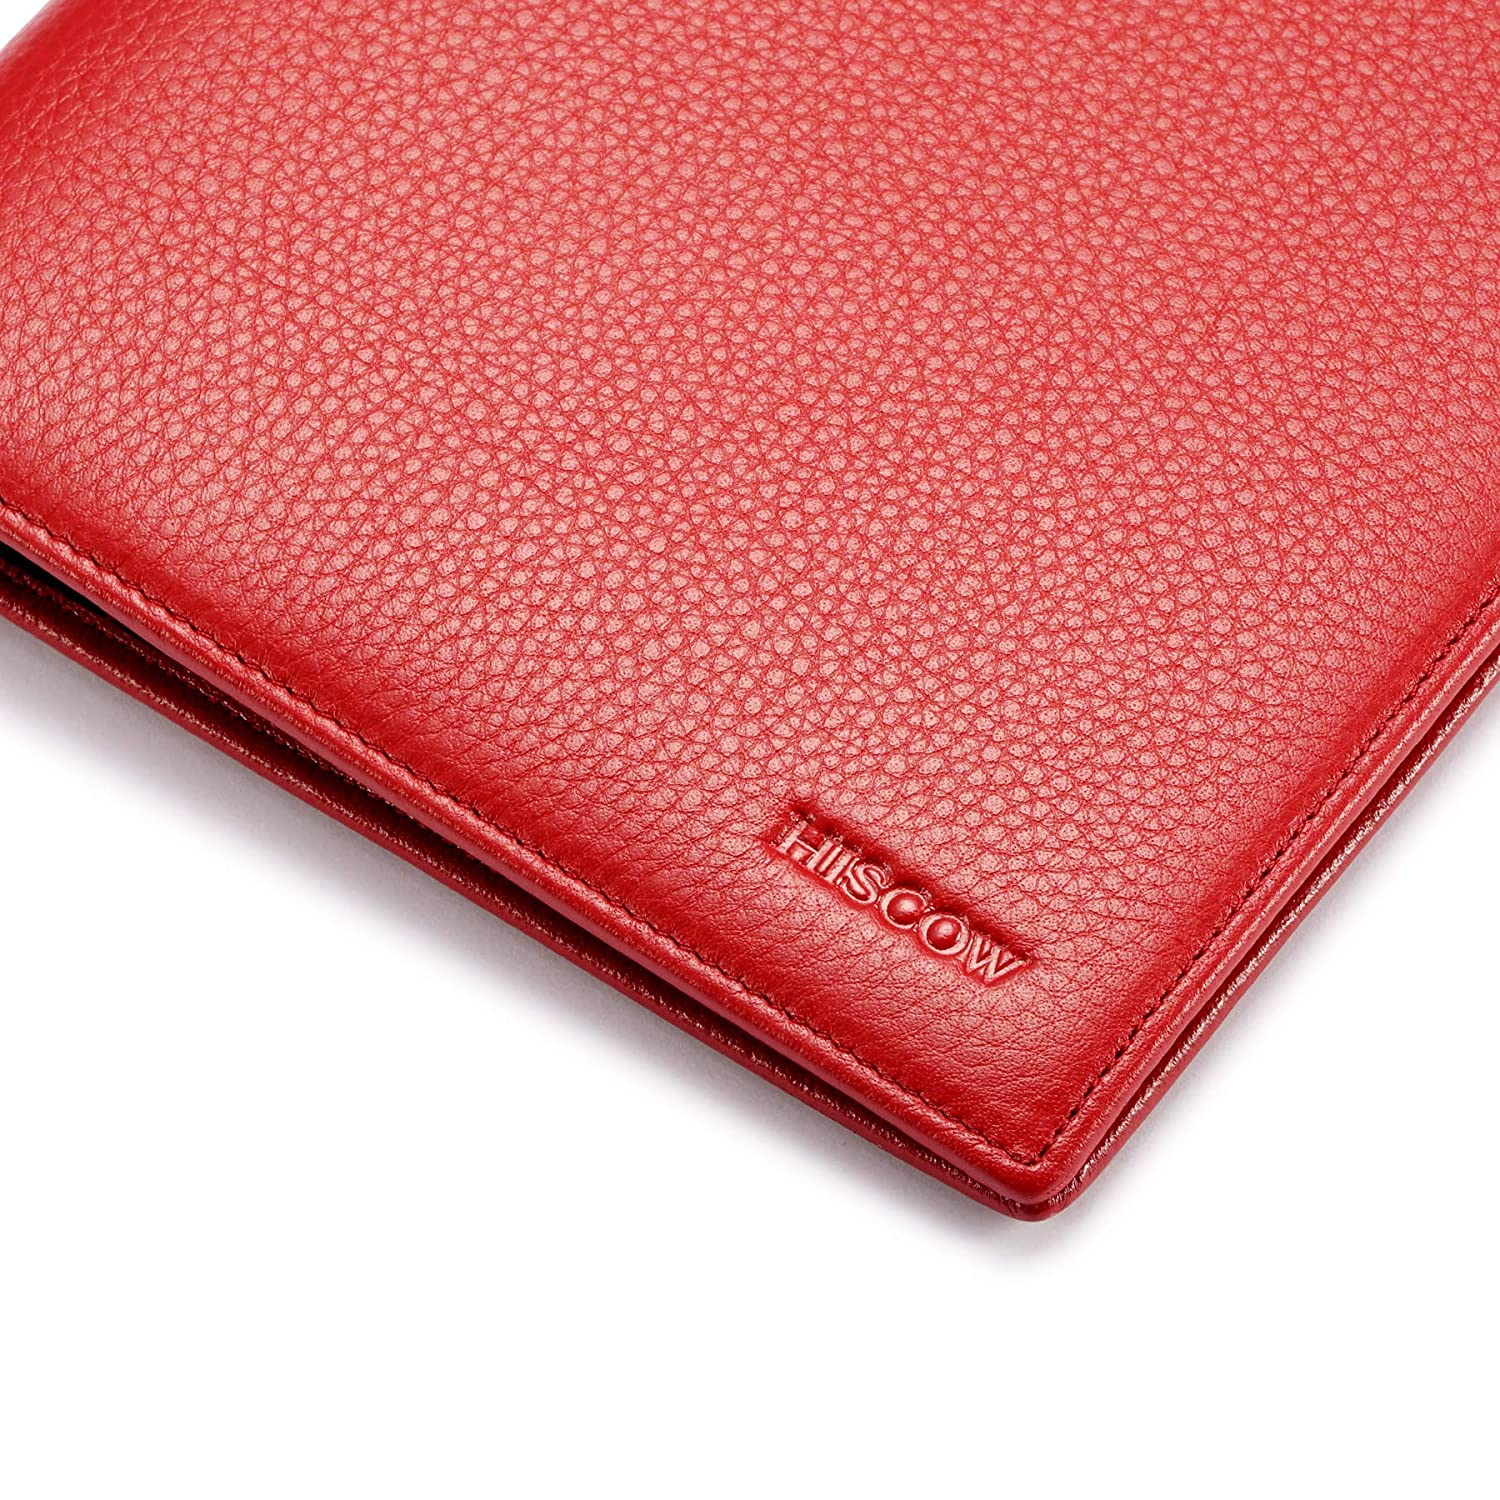 Italian Calfskin HISCOW Classy Leather Junior Padfolio with Pen Loop Pebbled Red